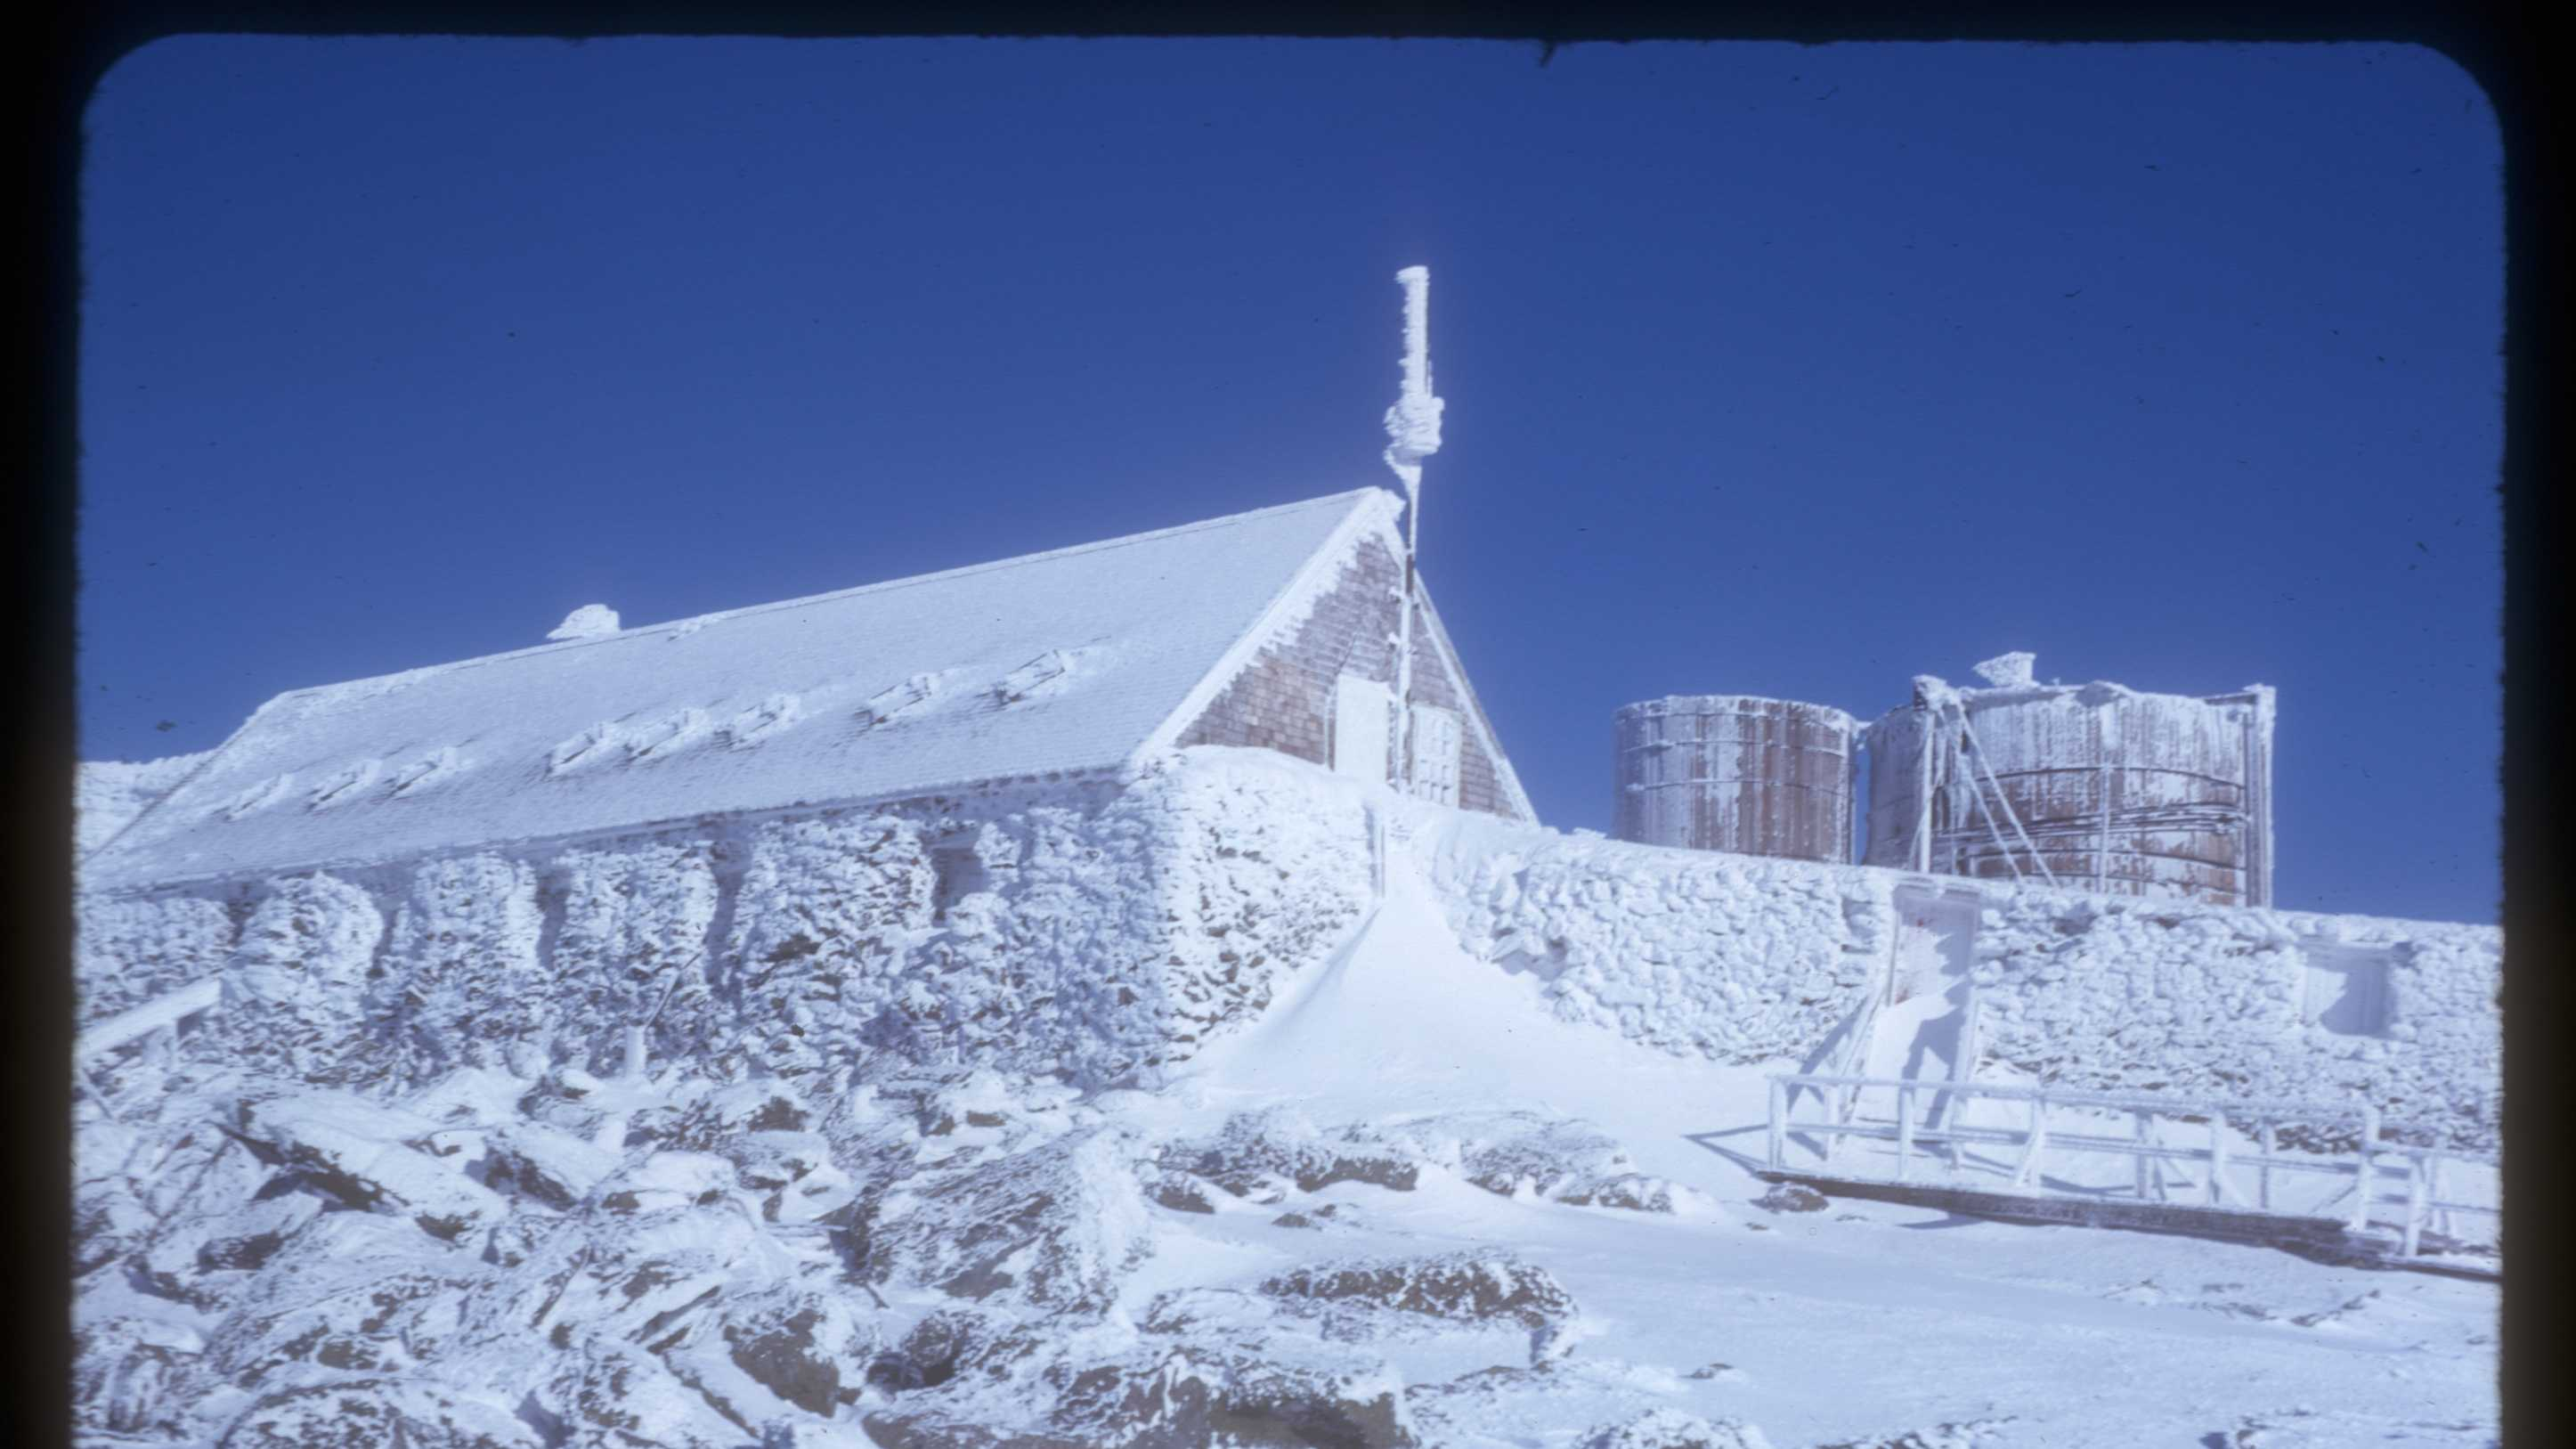 It was no small task building transmitter facilities and maintaining at 6,288 feet, the site of some of the world's worst weather.